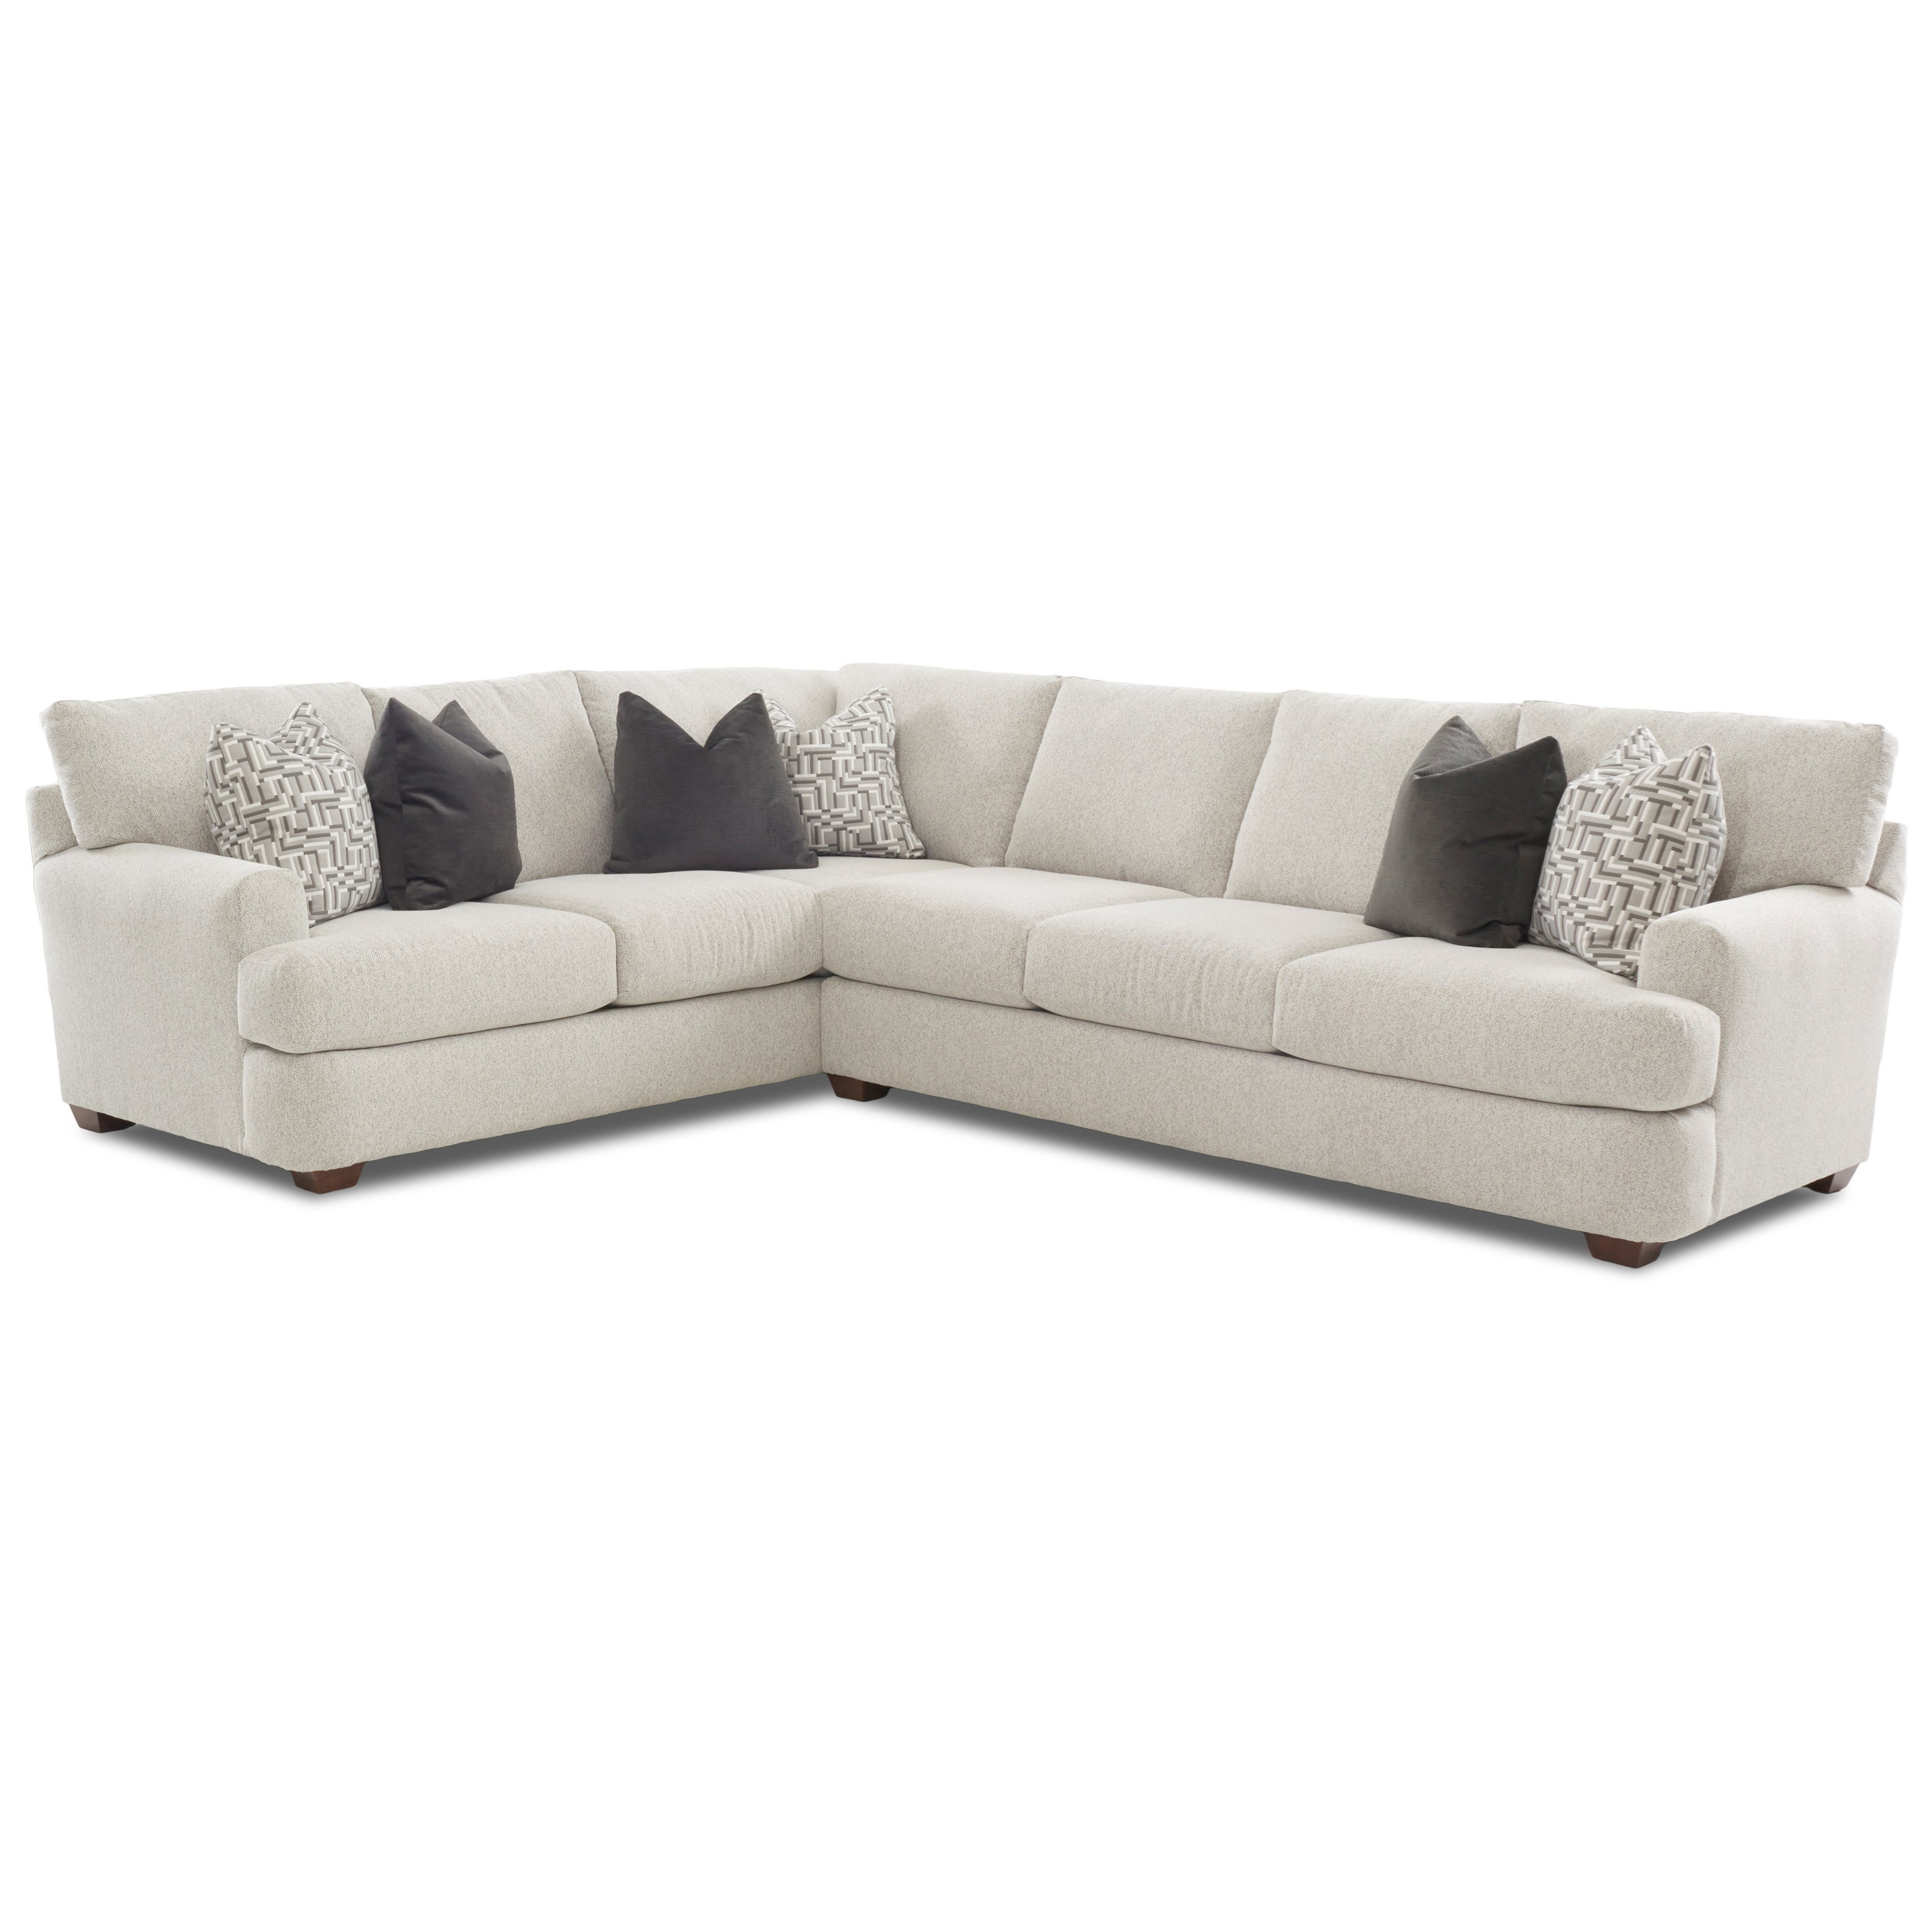 klaussner loomis sectional sofa small sleeper dimensions sofas baci living room